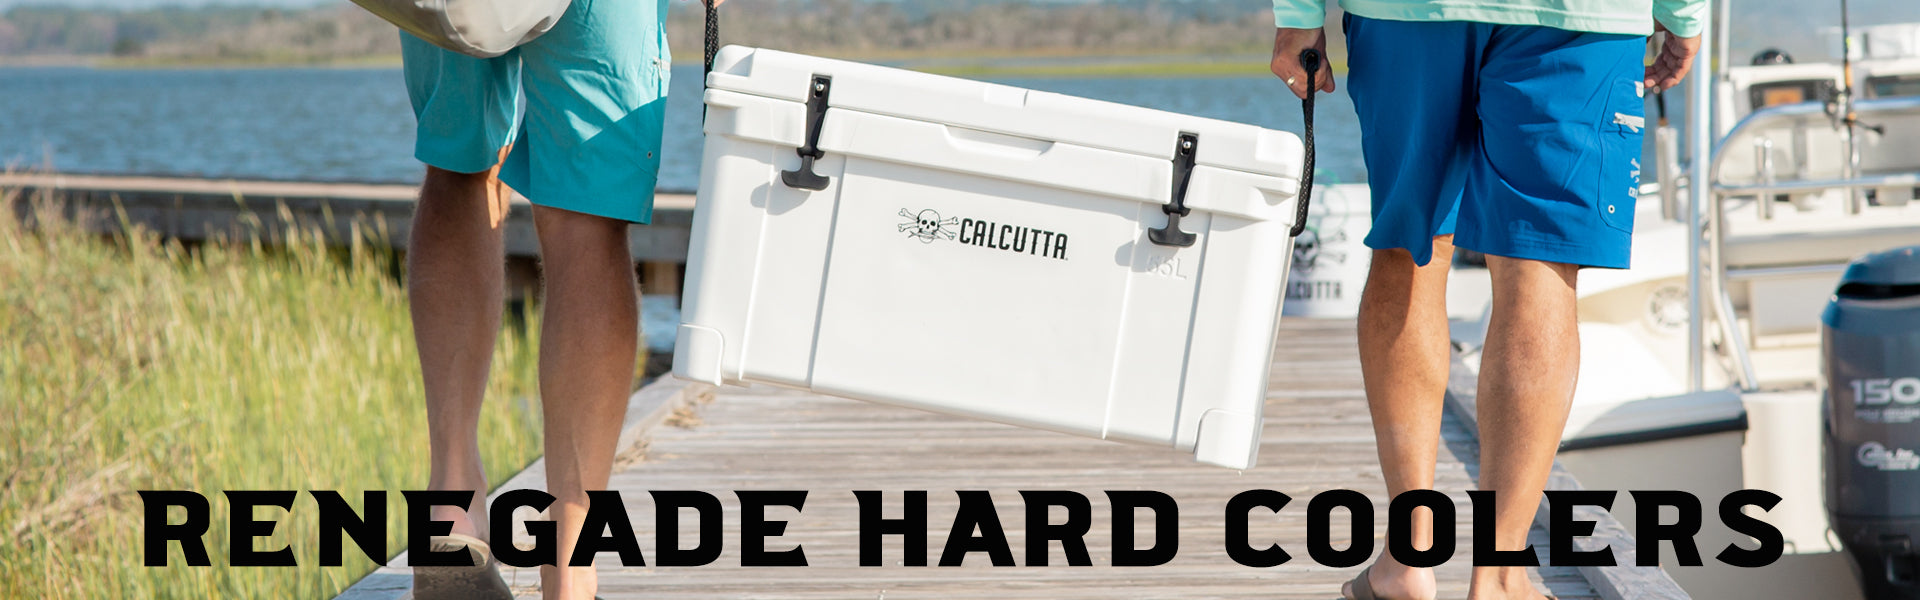 Hard Coolers